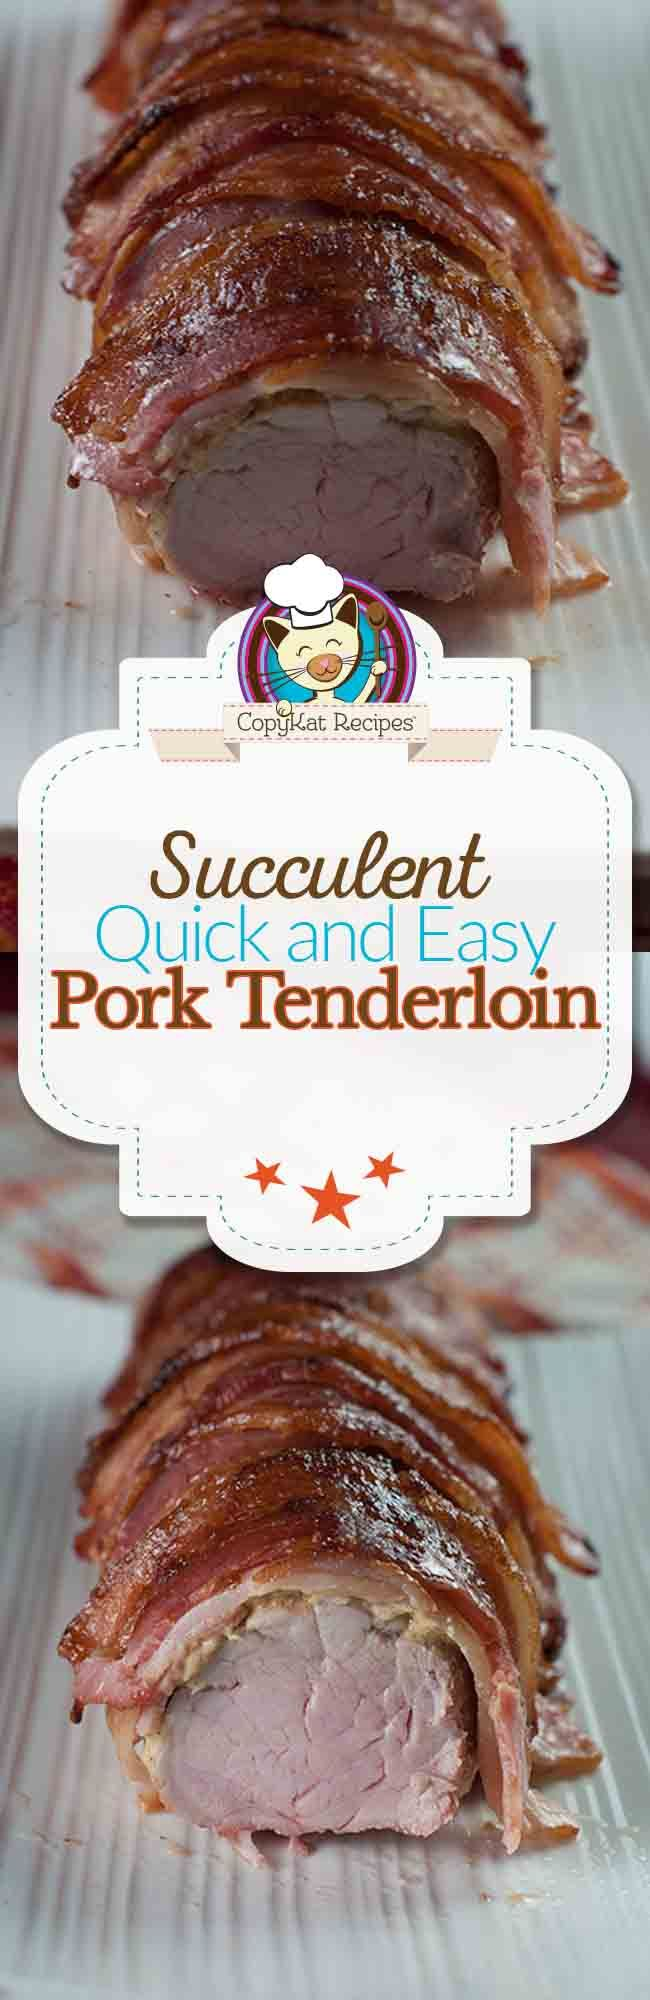 Pork Tenderloin is easy to prepare, and the bacon makes this easy.